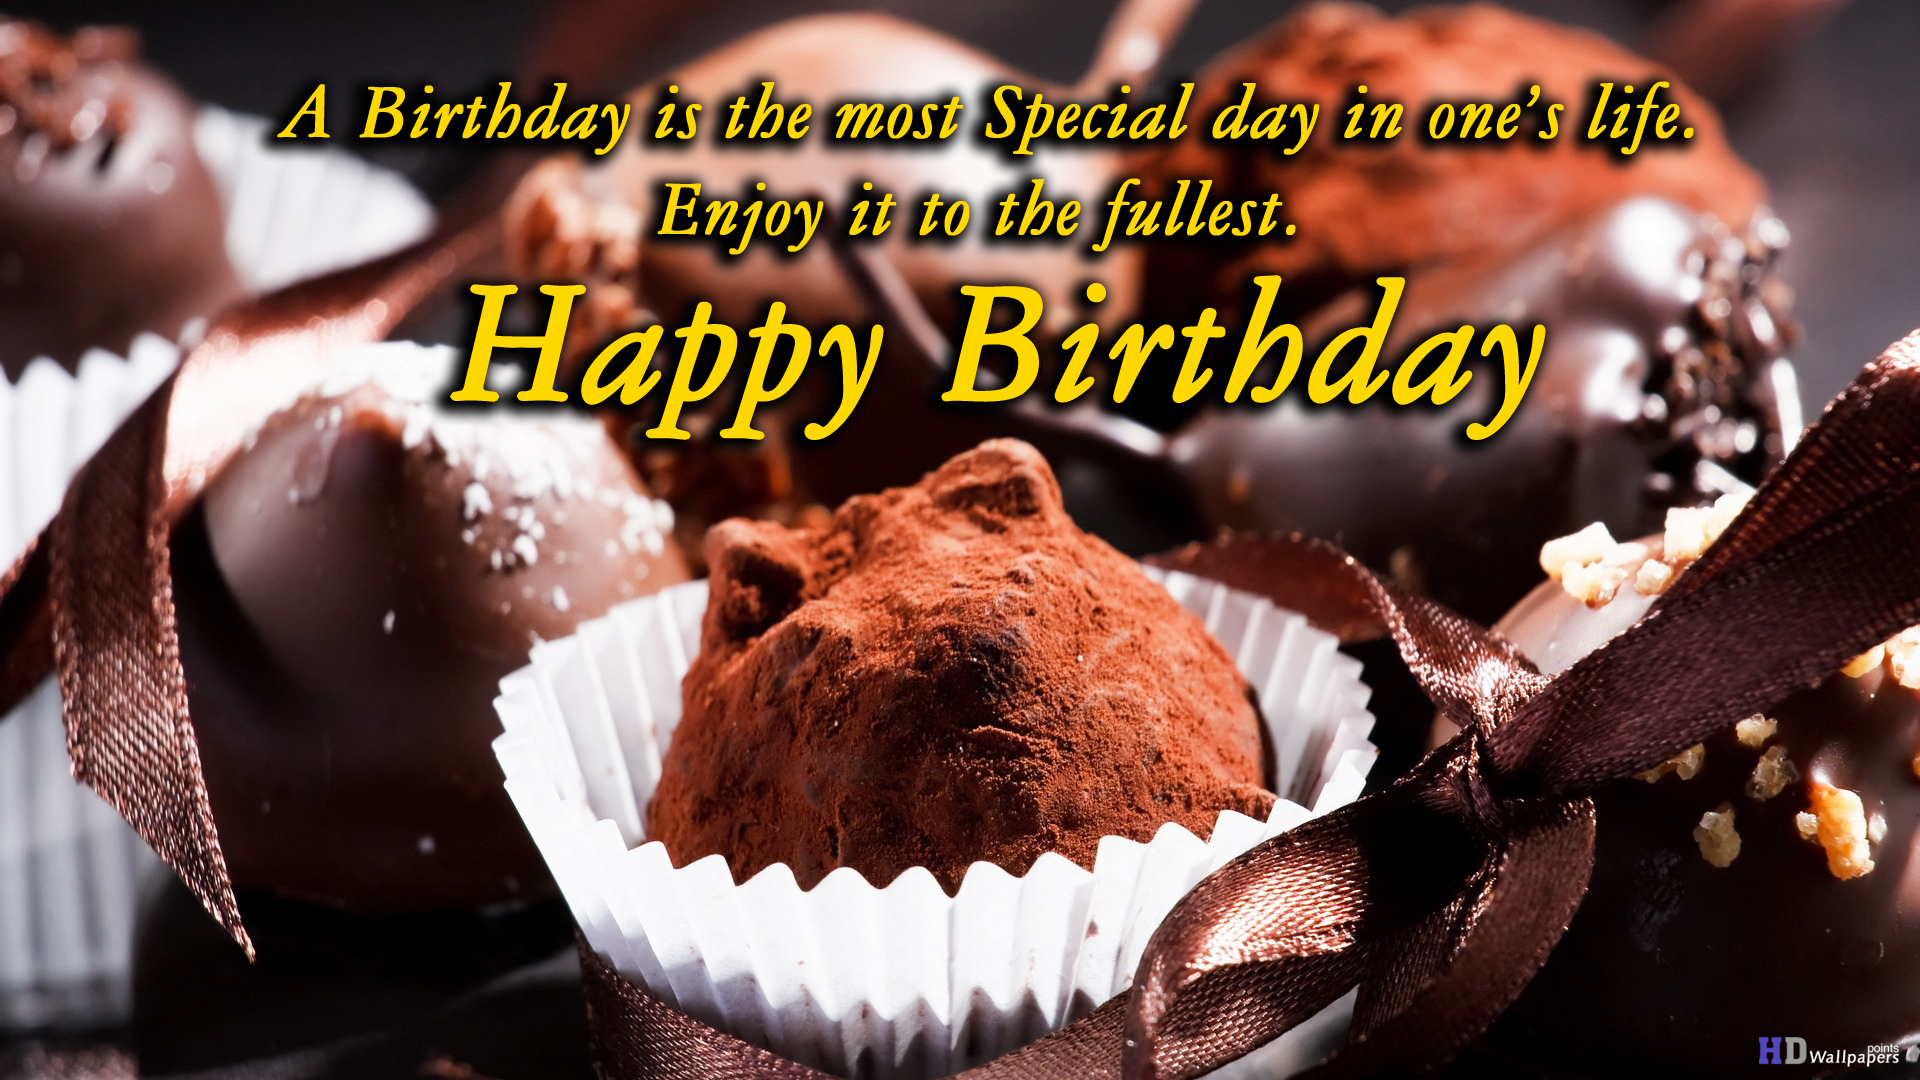 Download Birthday Wishes Cake Wallpapers Gallery